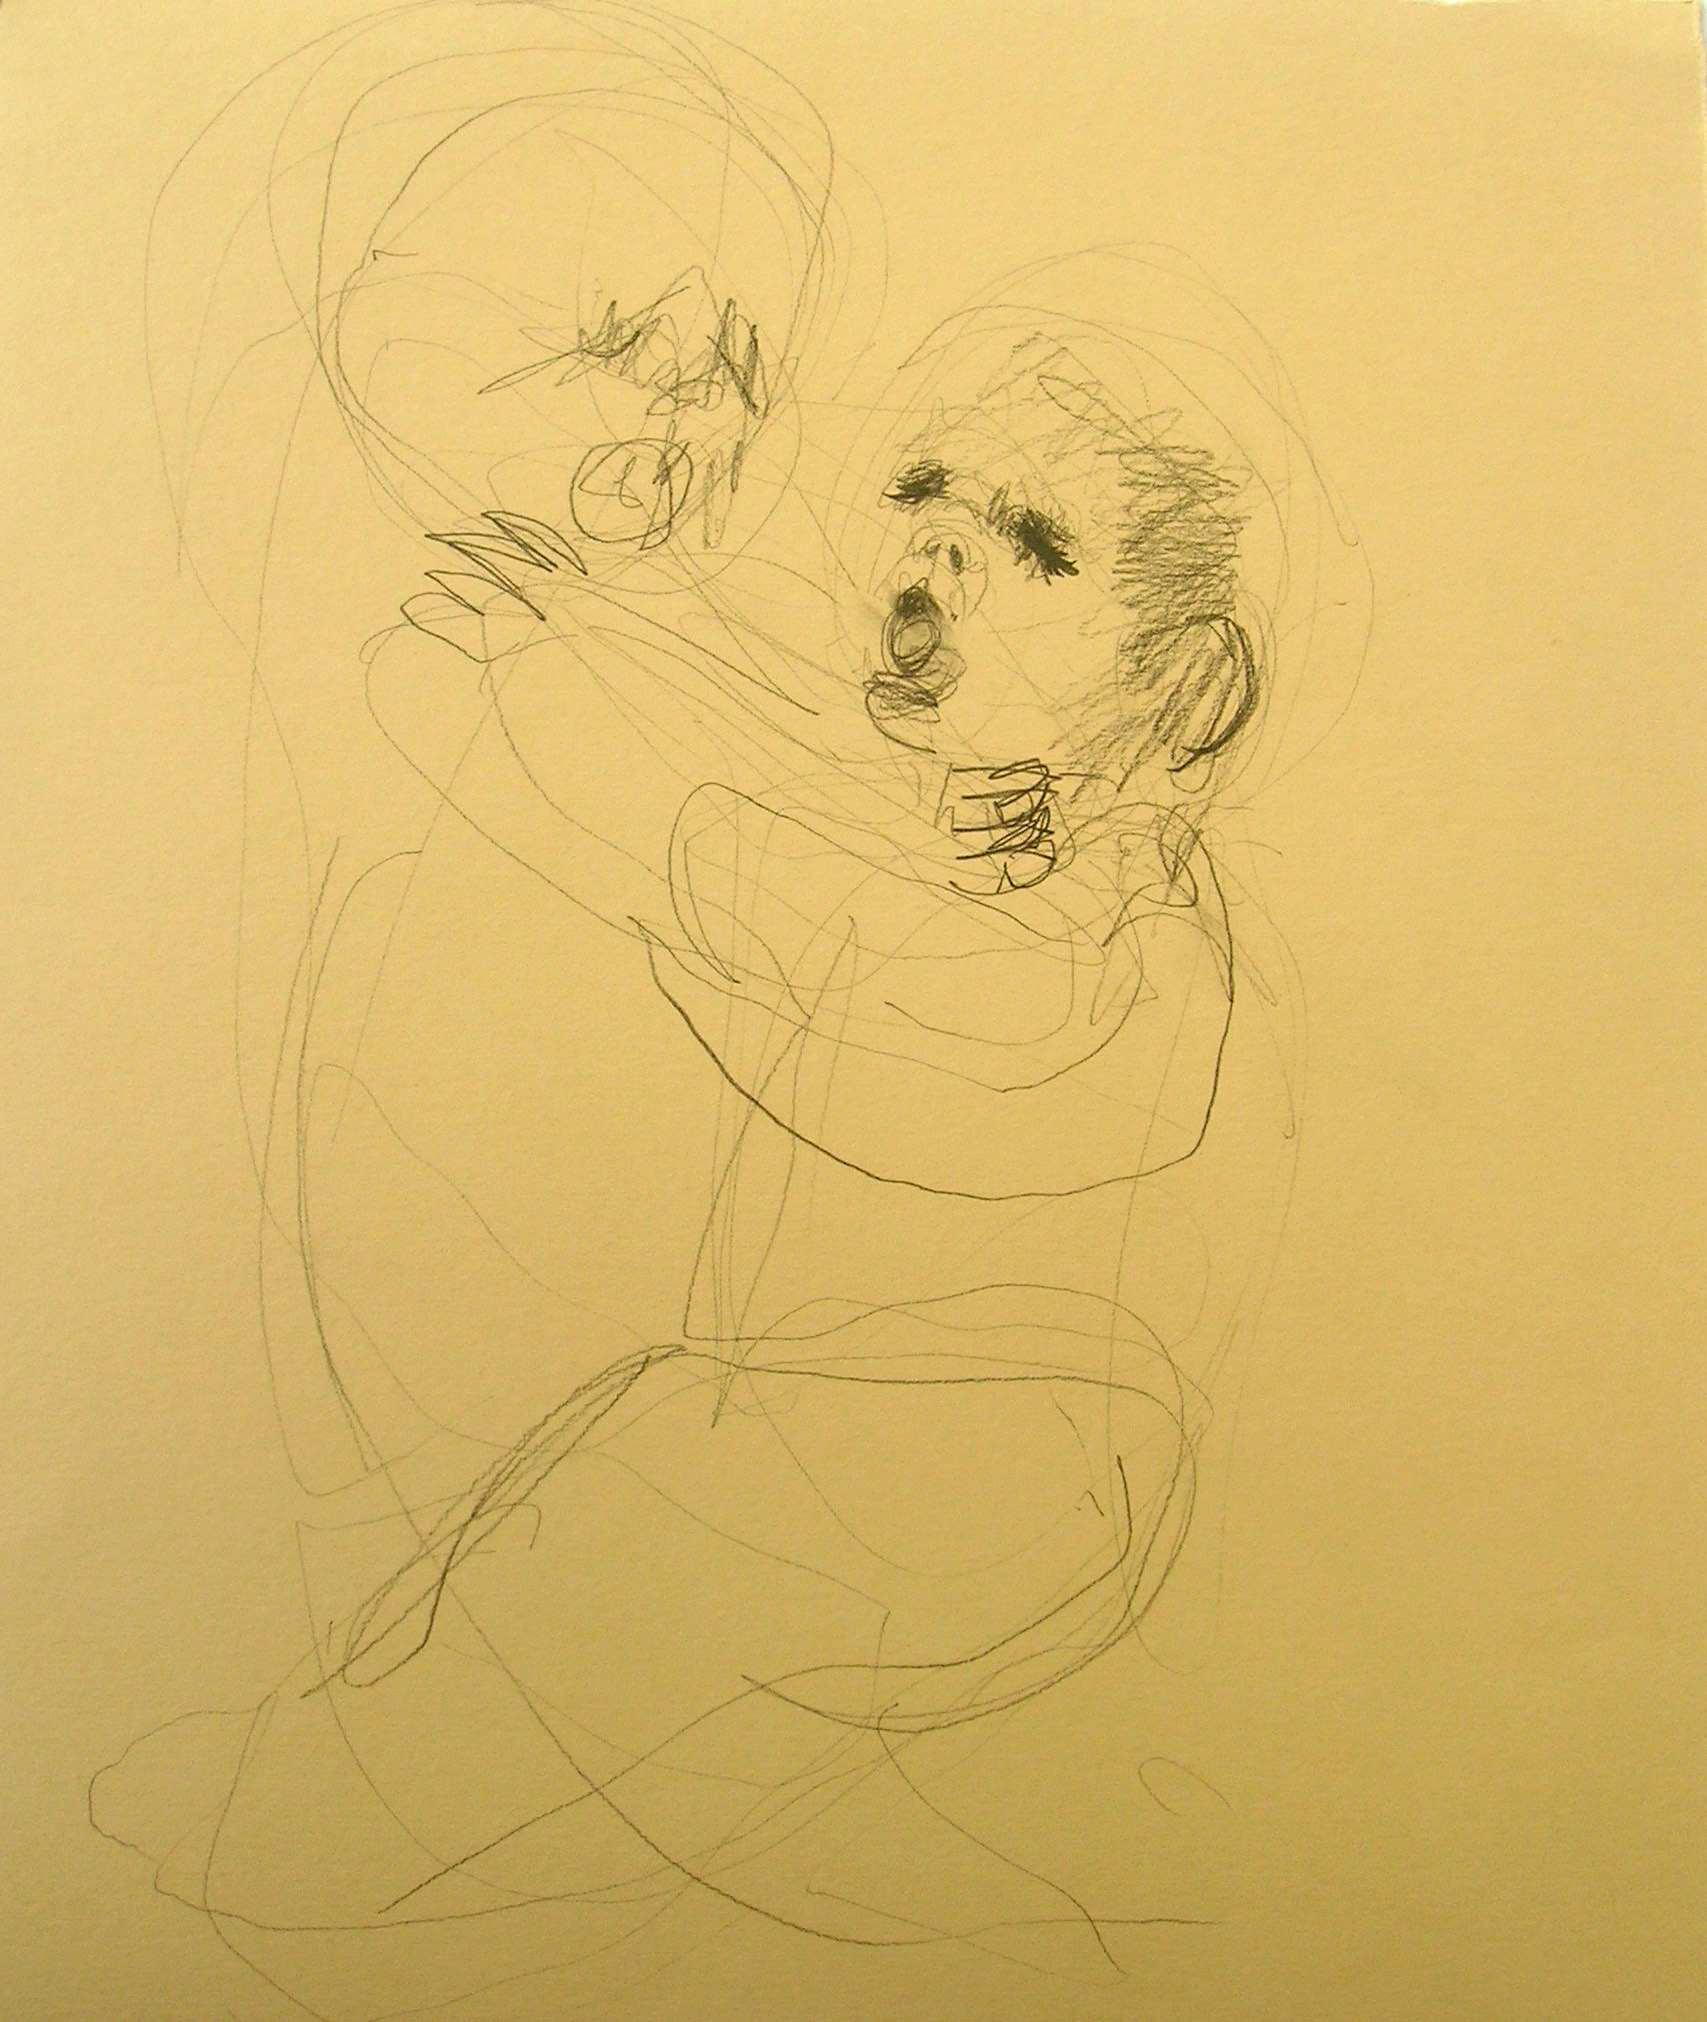 Sentencia (Boy Choking 2), 2007, Graphite and watercolor on paper, 14 X 13 in.